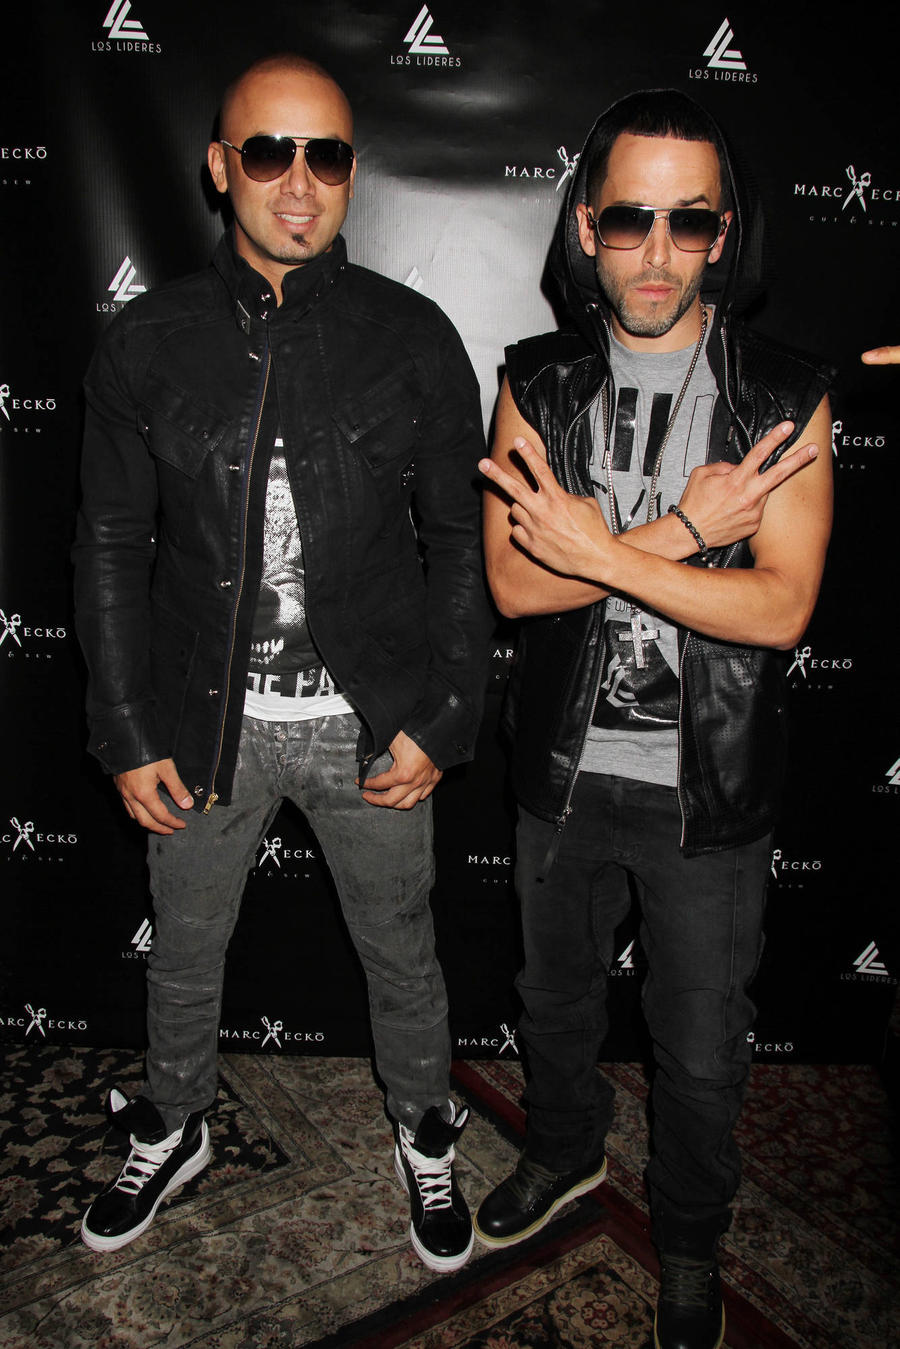 Wisin & Yandel Plan Music Comeback